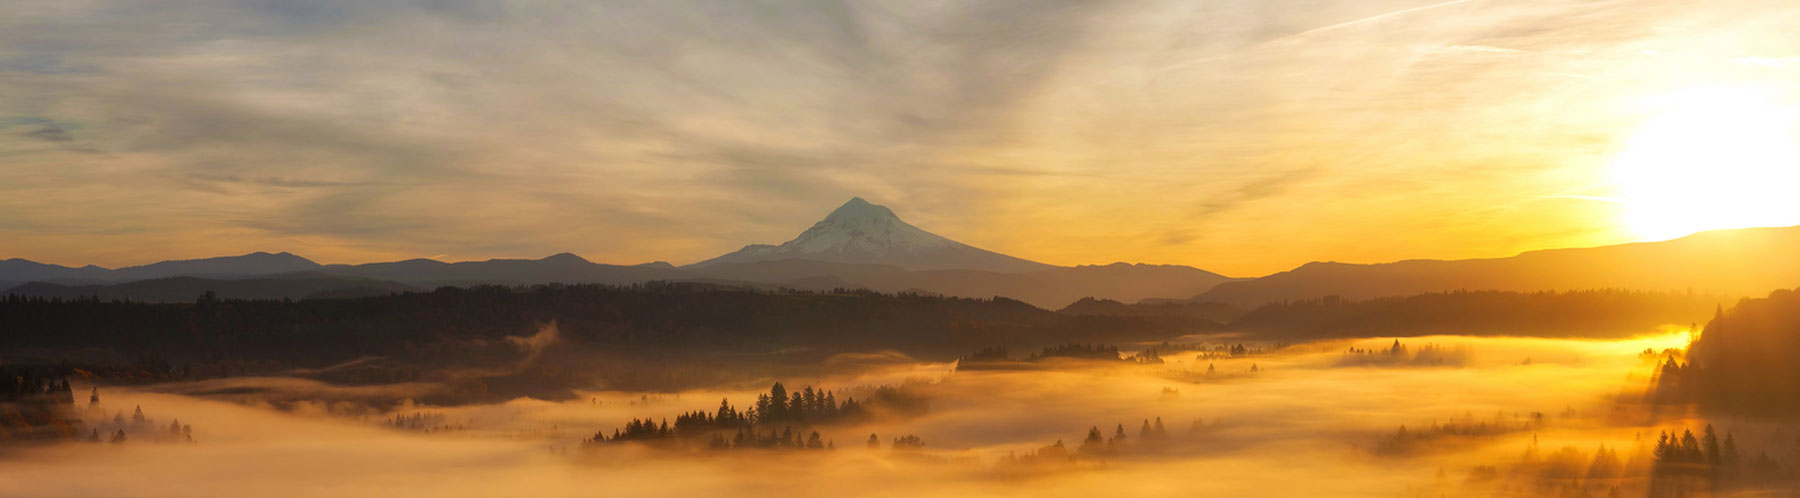 Perez-Selsky Law Office - Mcminnville Oregon